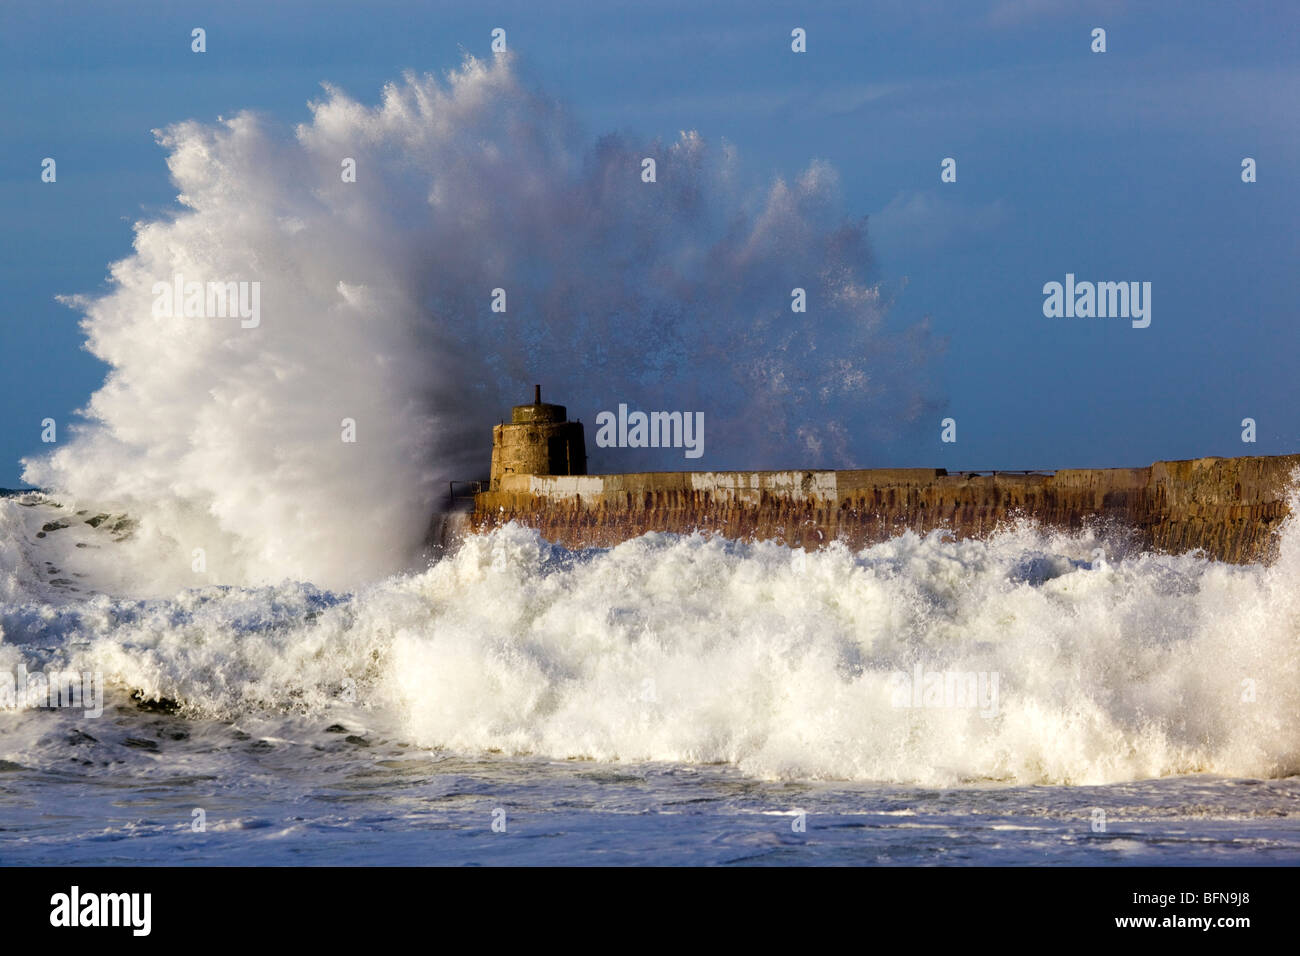 Portreath; wave breaks over the pier in a storm; Cornwall - Stock Image